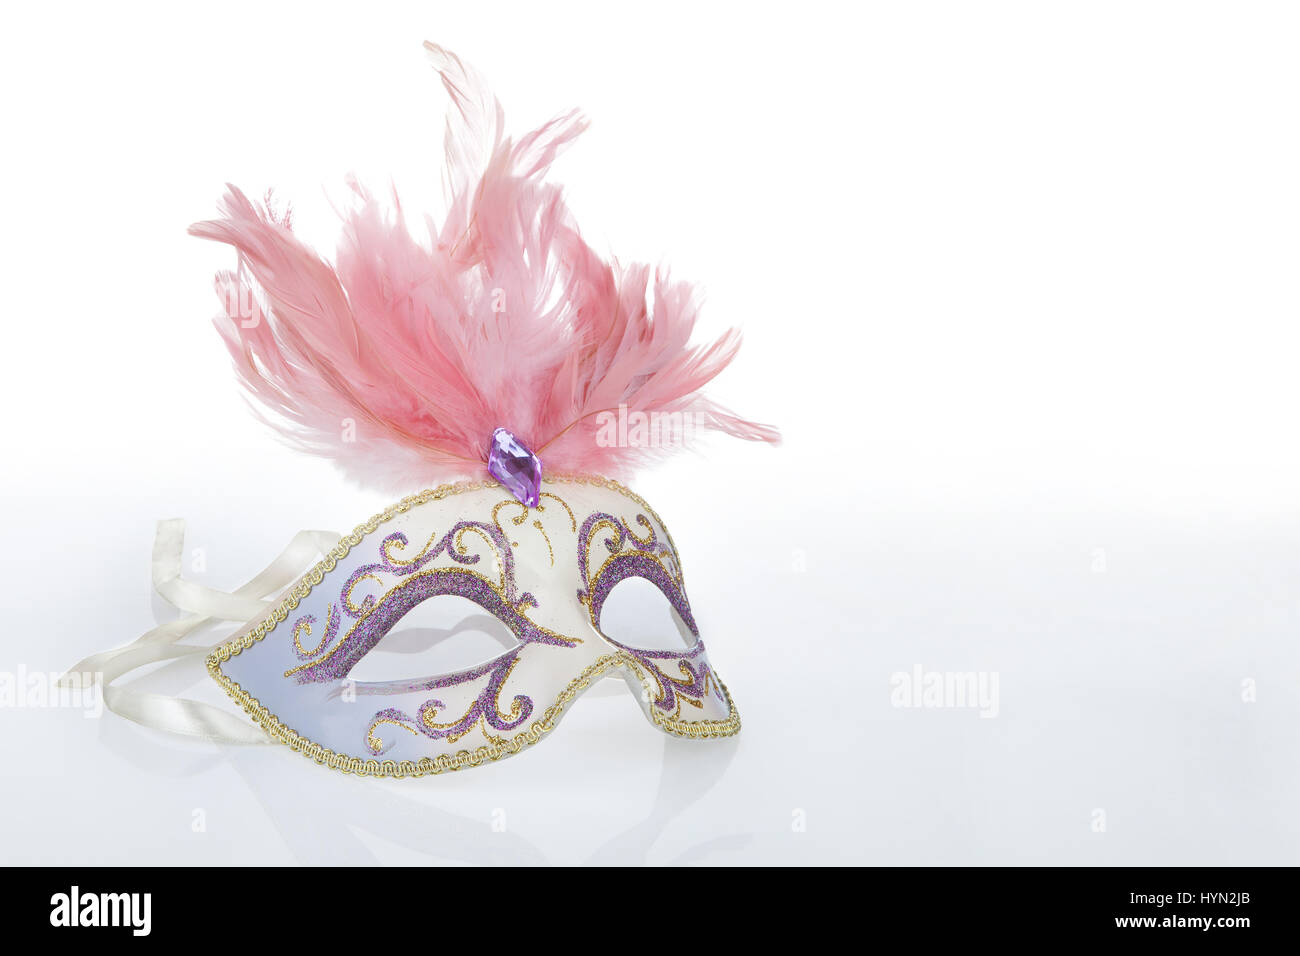 Beautiful carnival mask with pink feathers and a reflection, copy space on the right - Stock Image